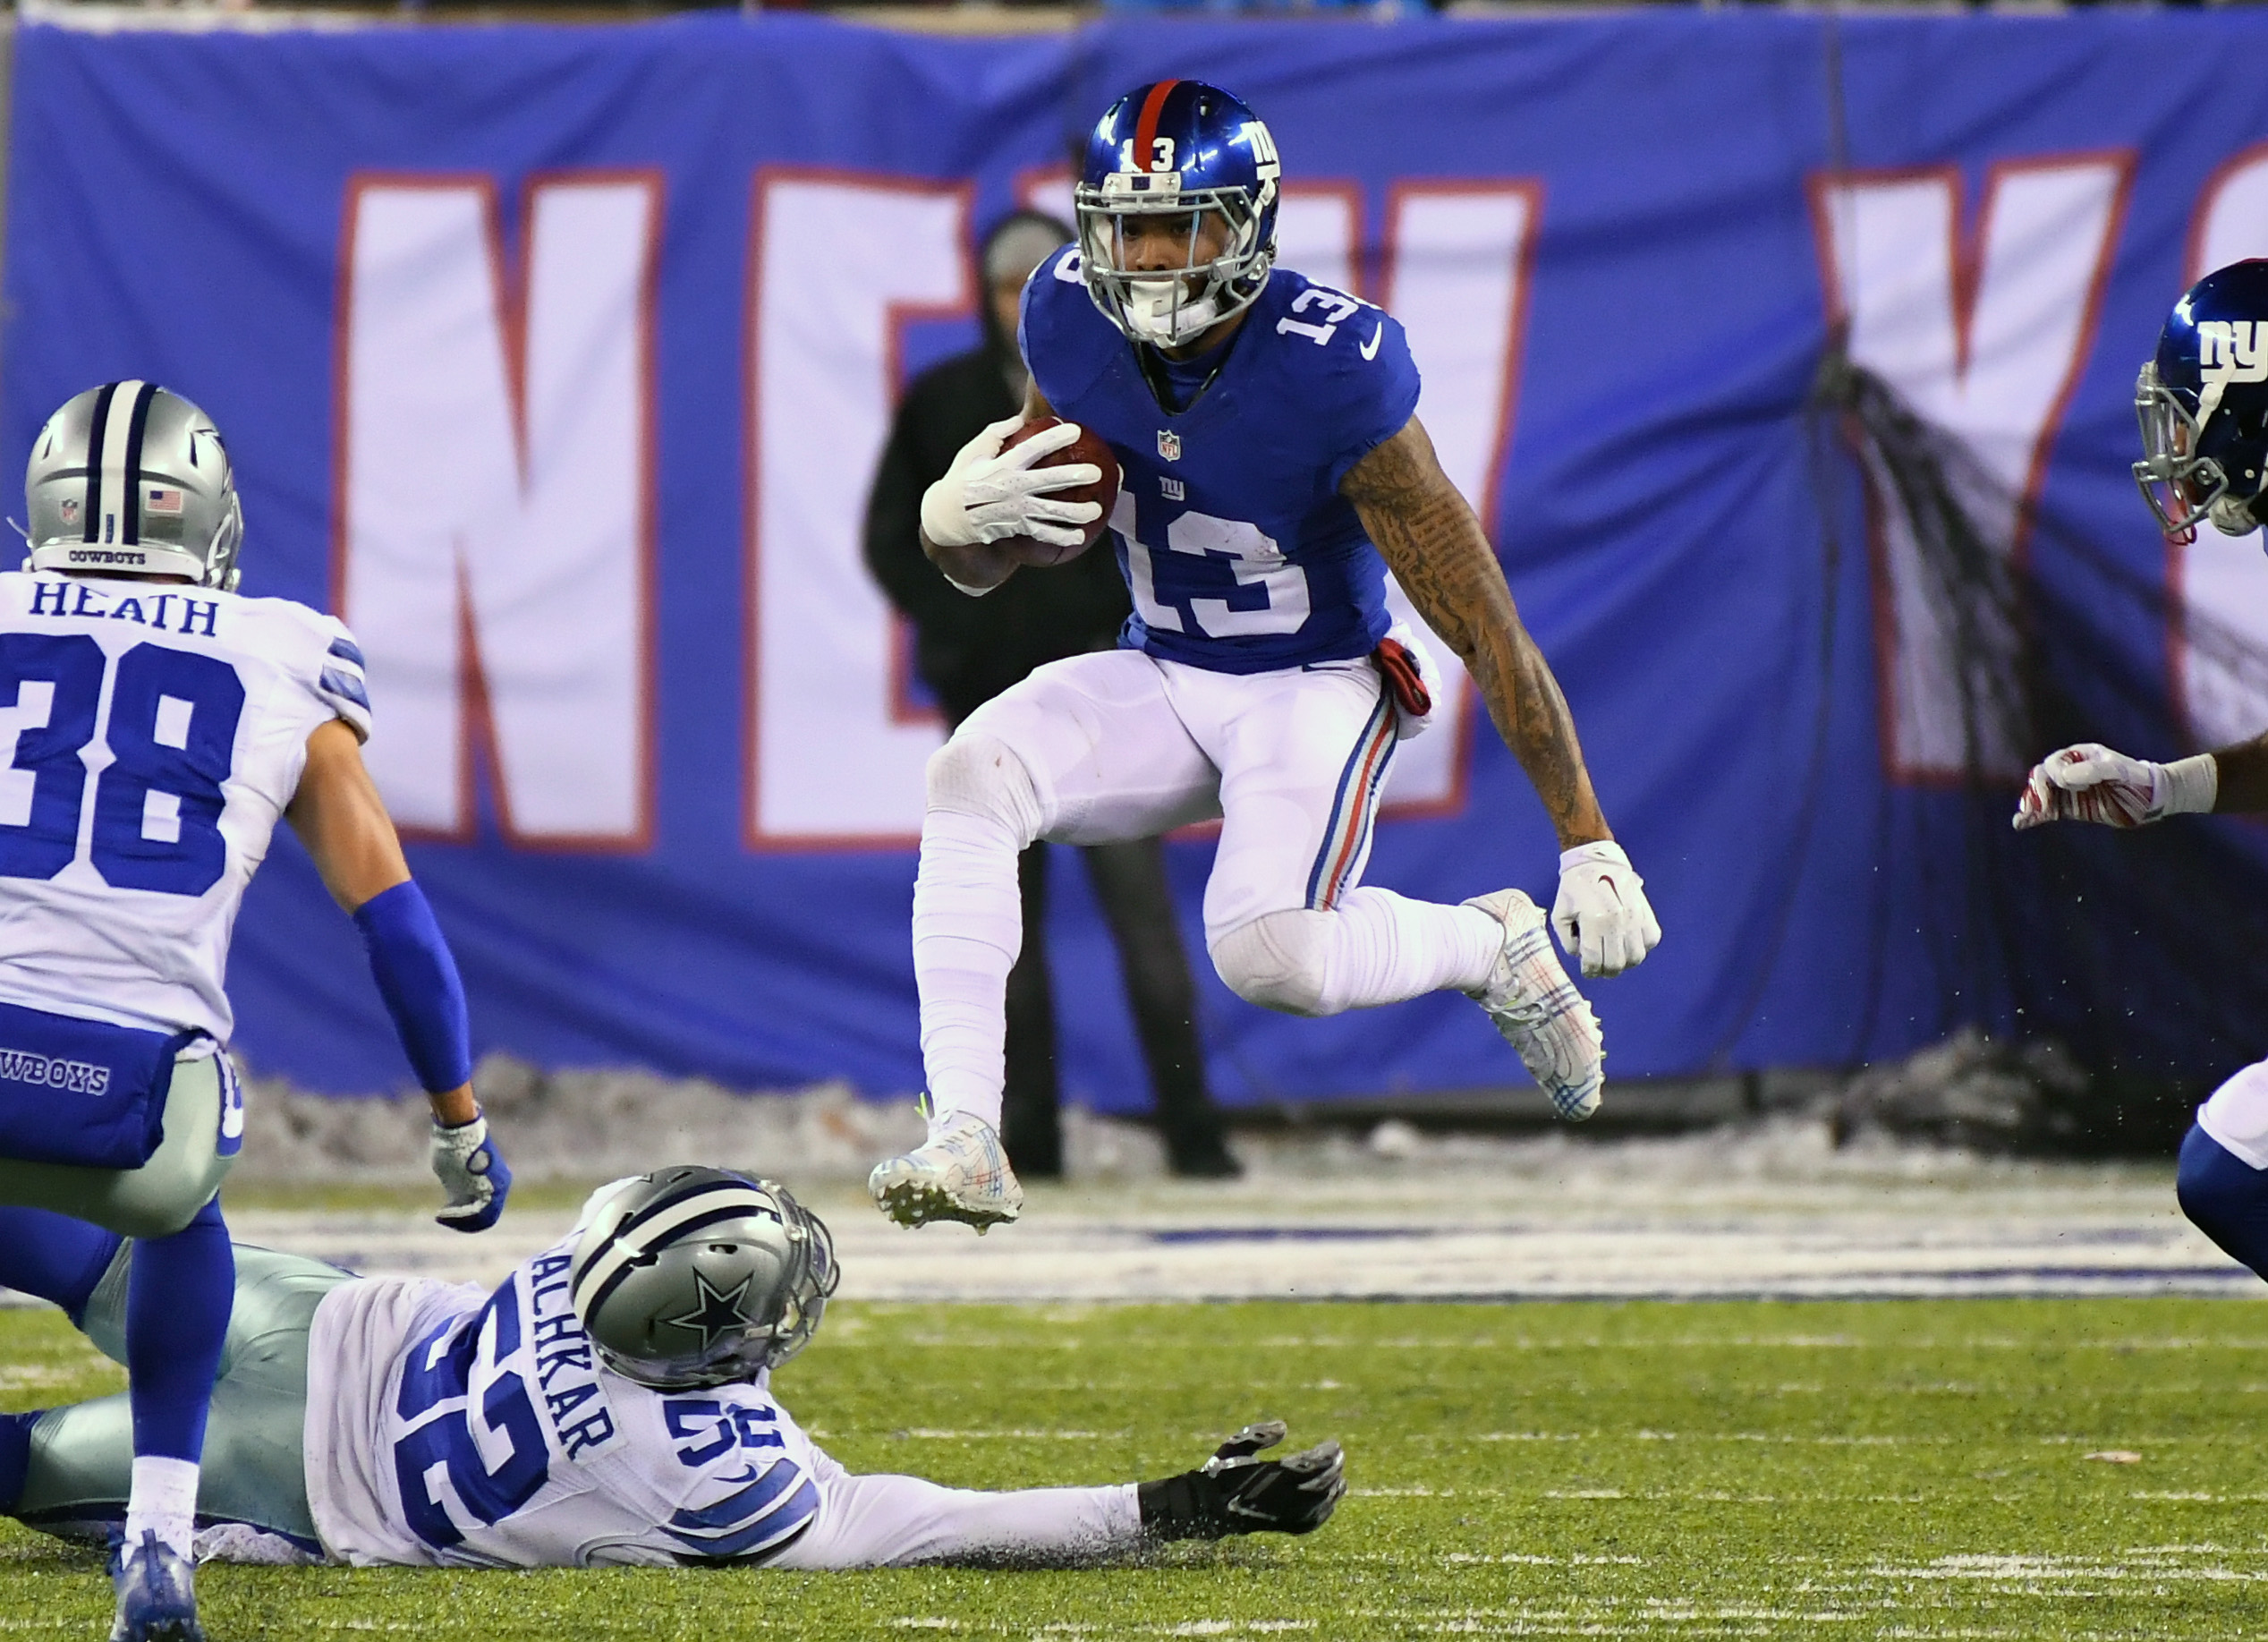 9743359-nfl-dallas-cowboys-at-new-york-giants